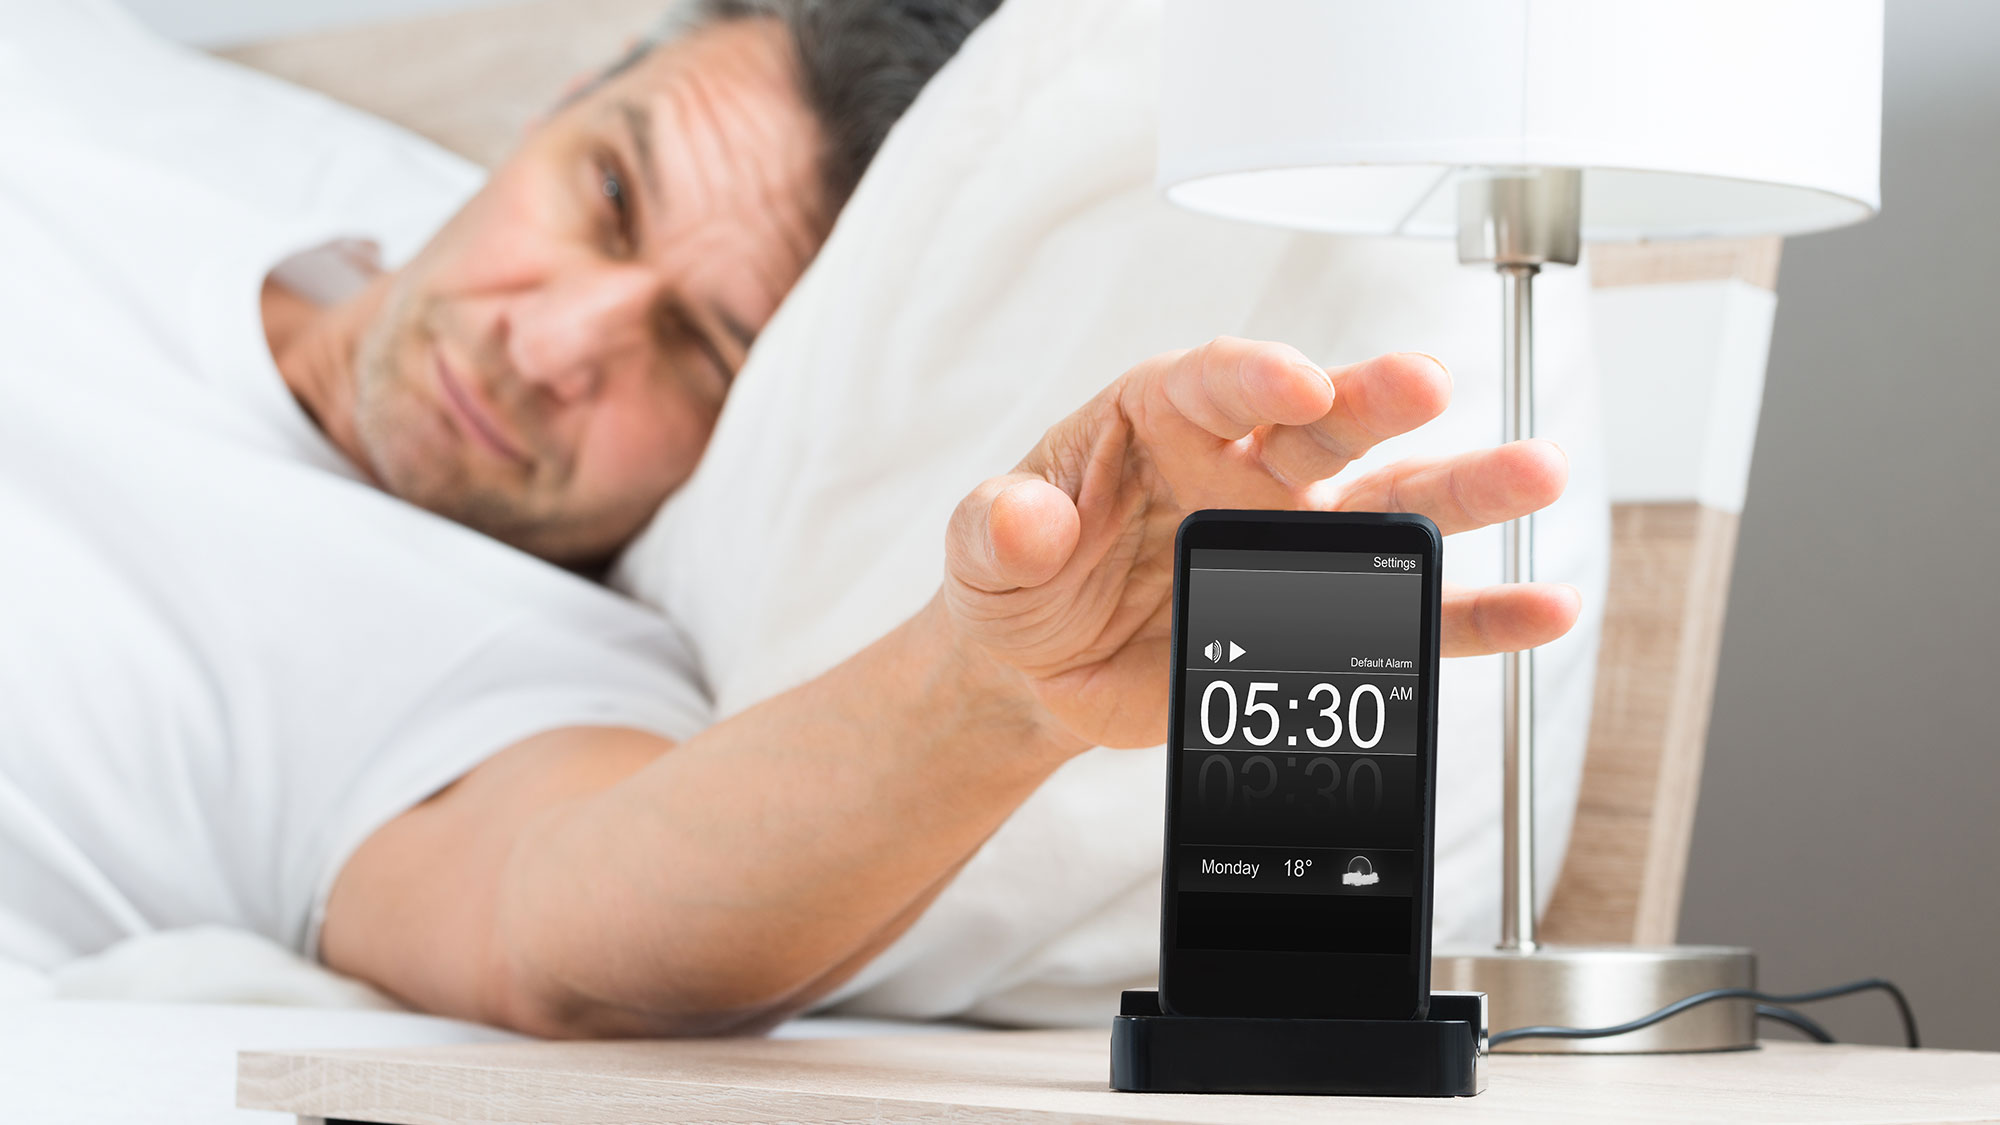 Man turning off his iPhone alarm clock.